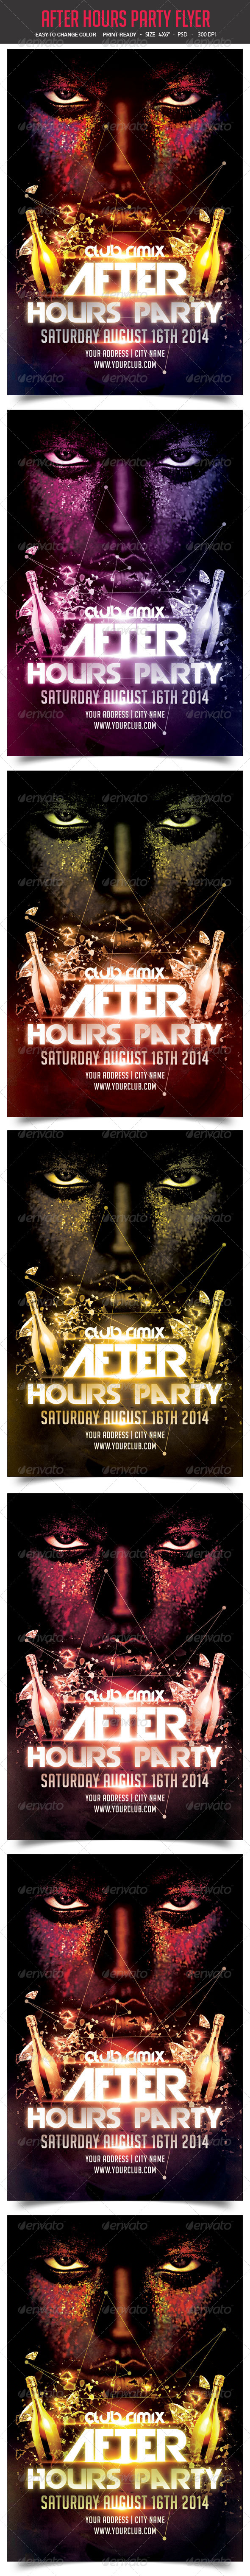 GraphicRiver After Hours Party Flyer 8676258